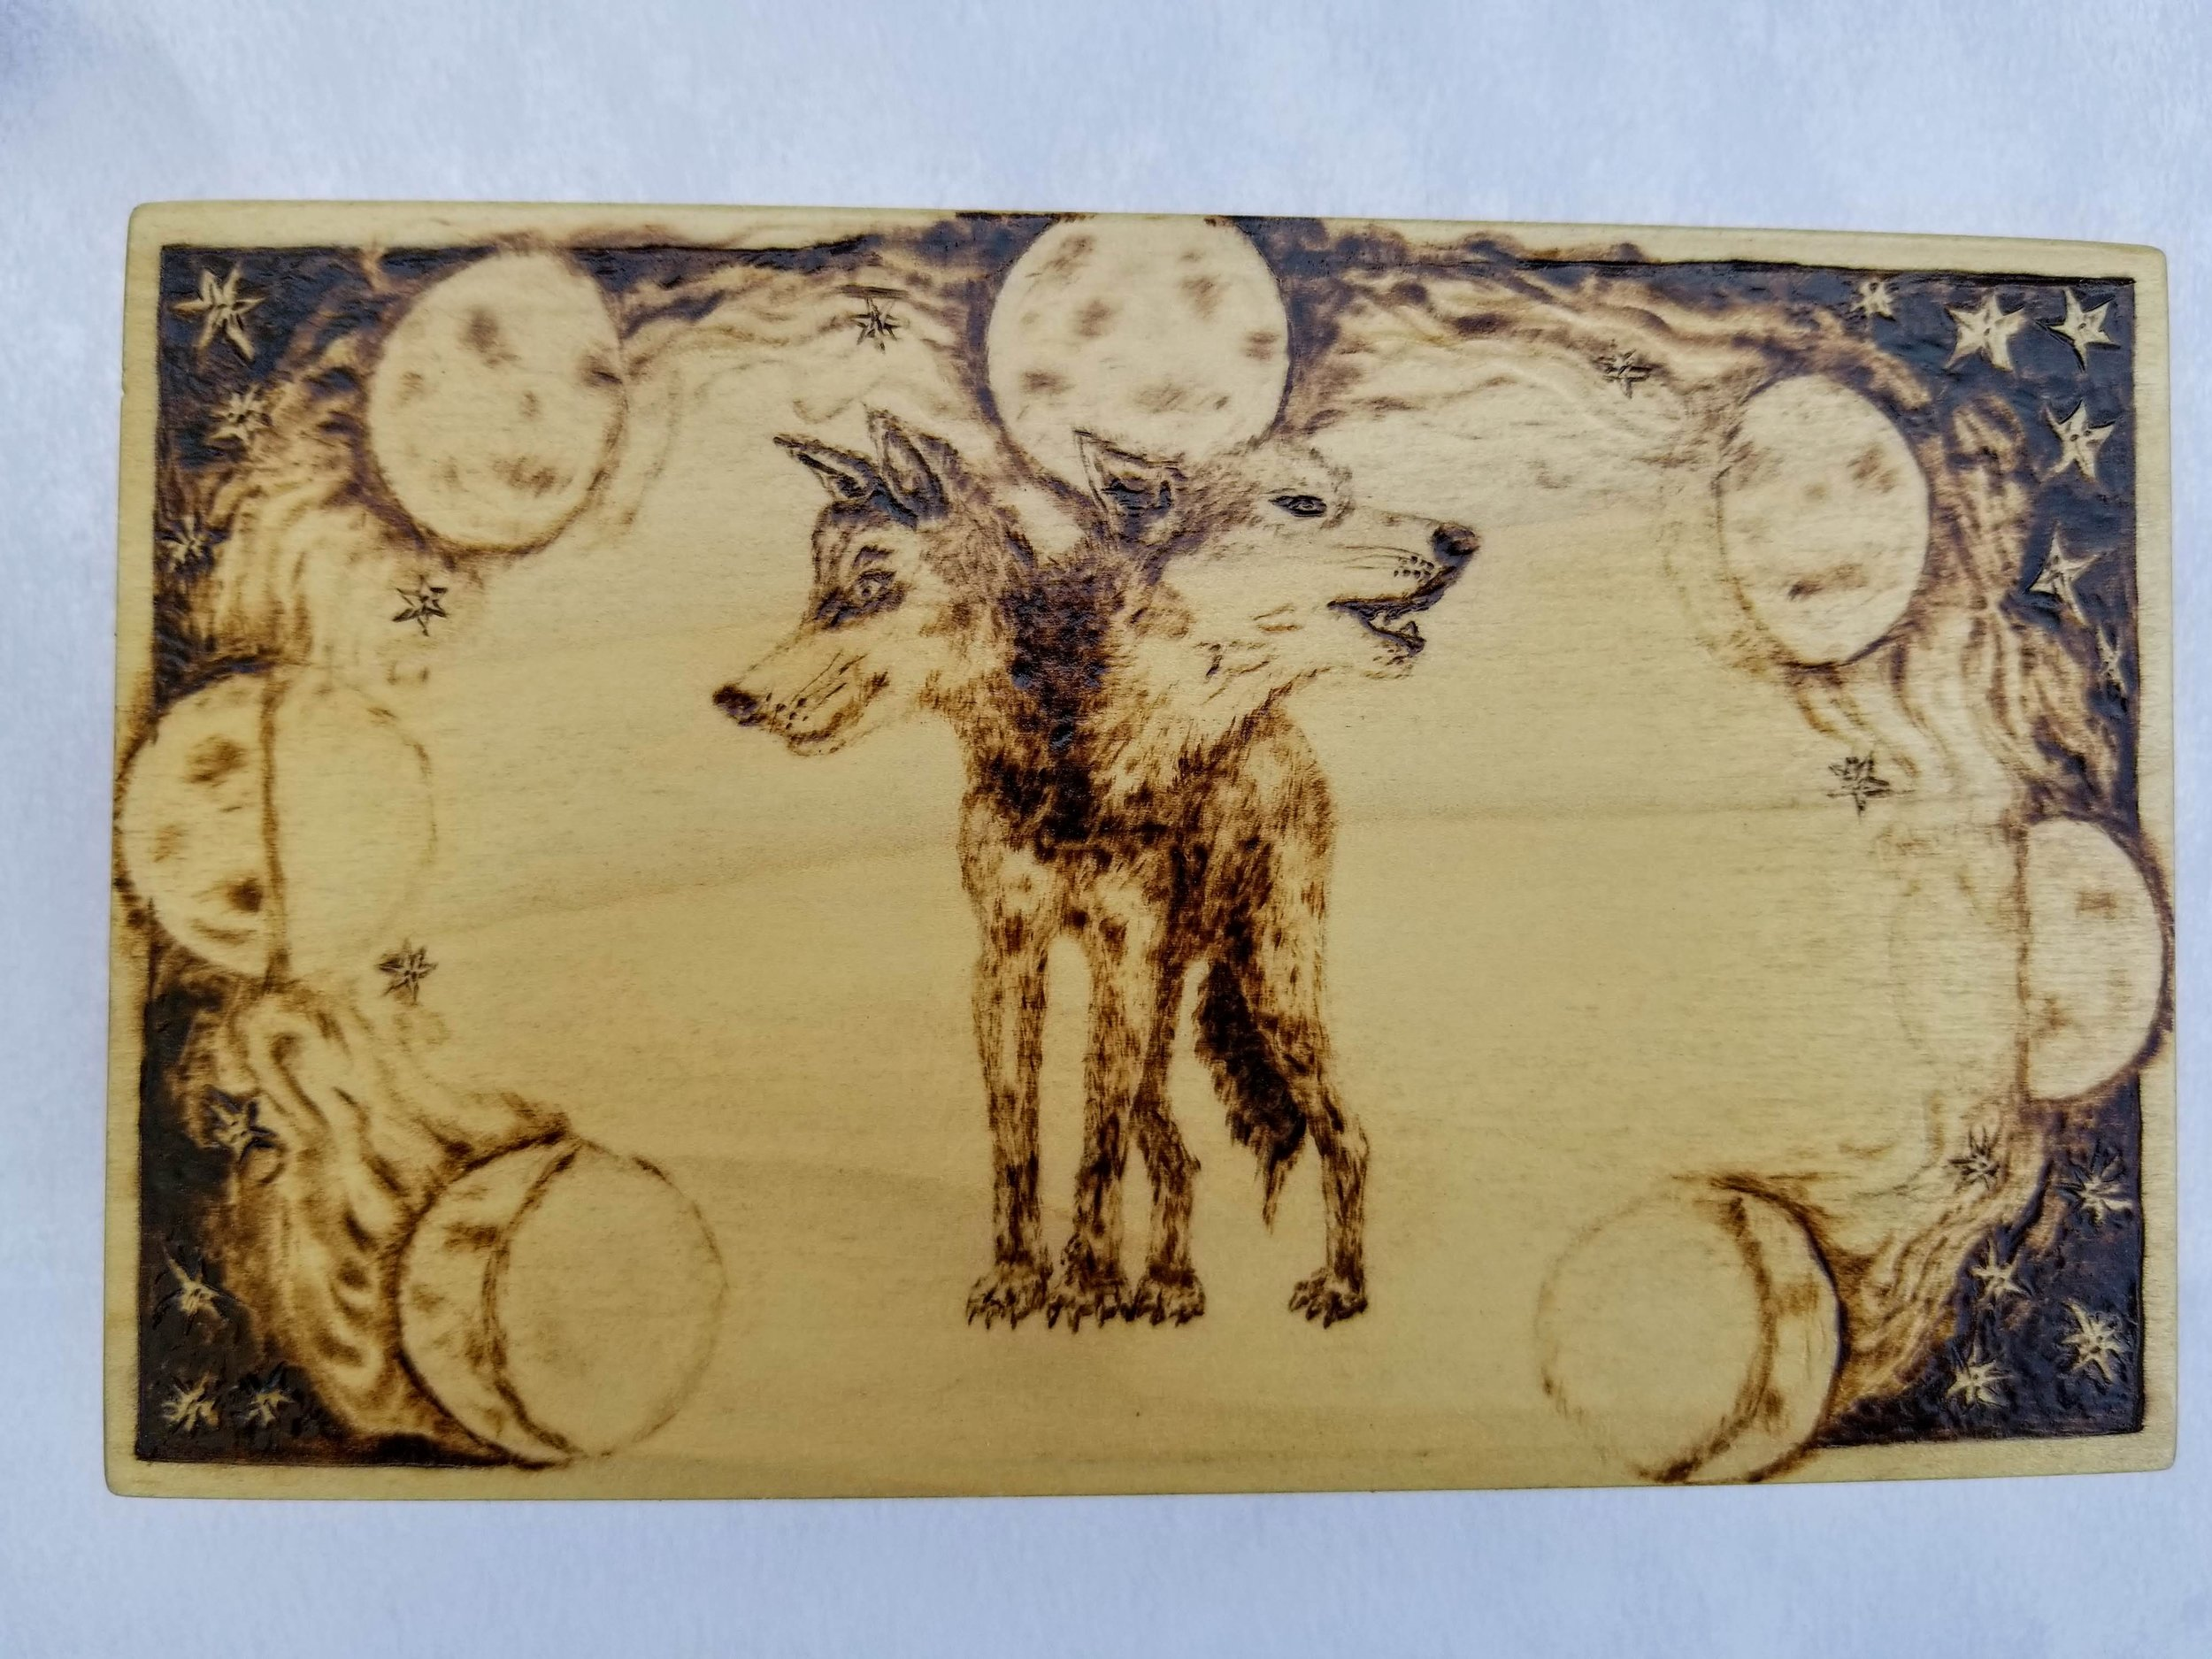 The lid of the box has a two headed wolf with phases of the moon.